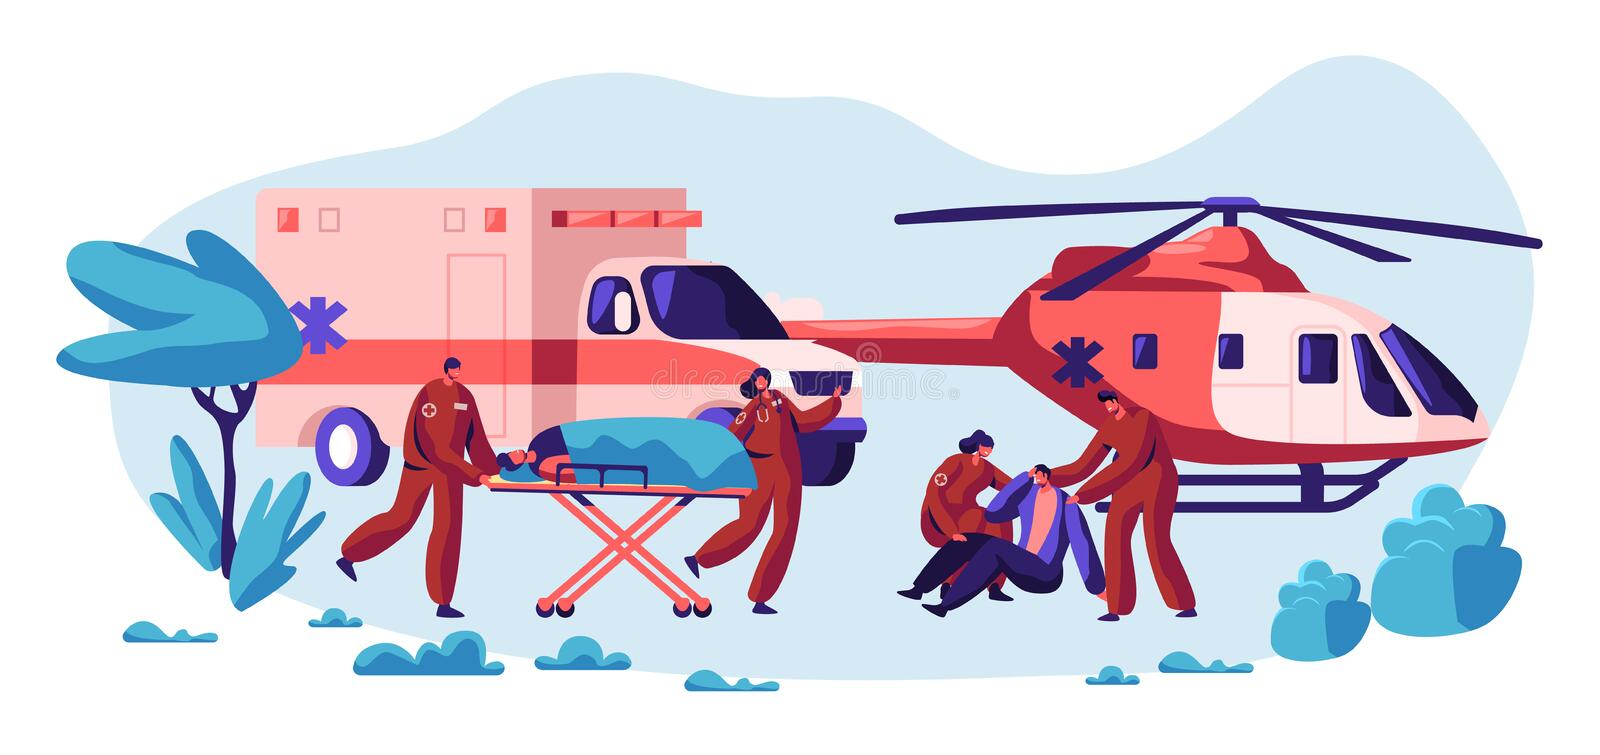 Professional Rescue Team Care your Life. Fast Transport, Helicopter and Vehicle Healthcare Character from Accident royalty free illustration